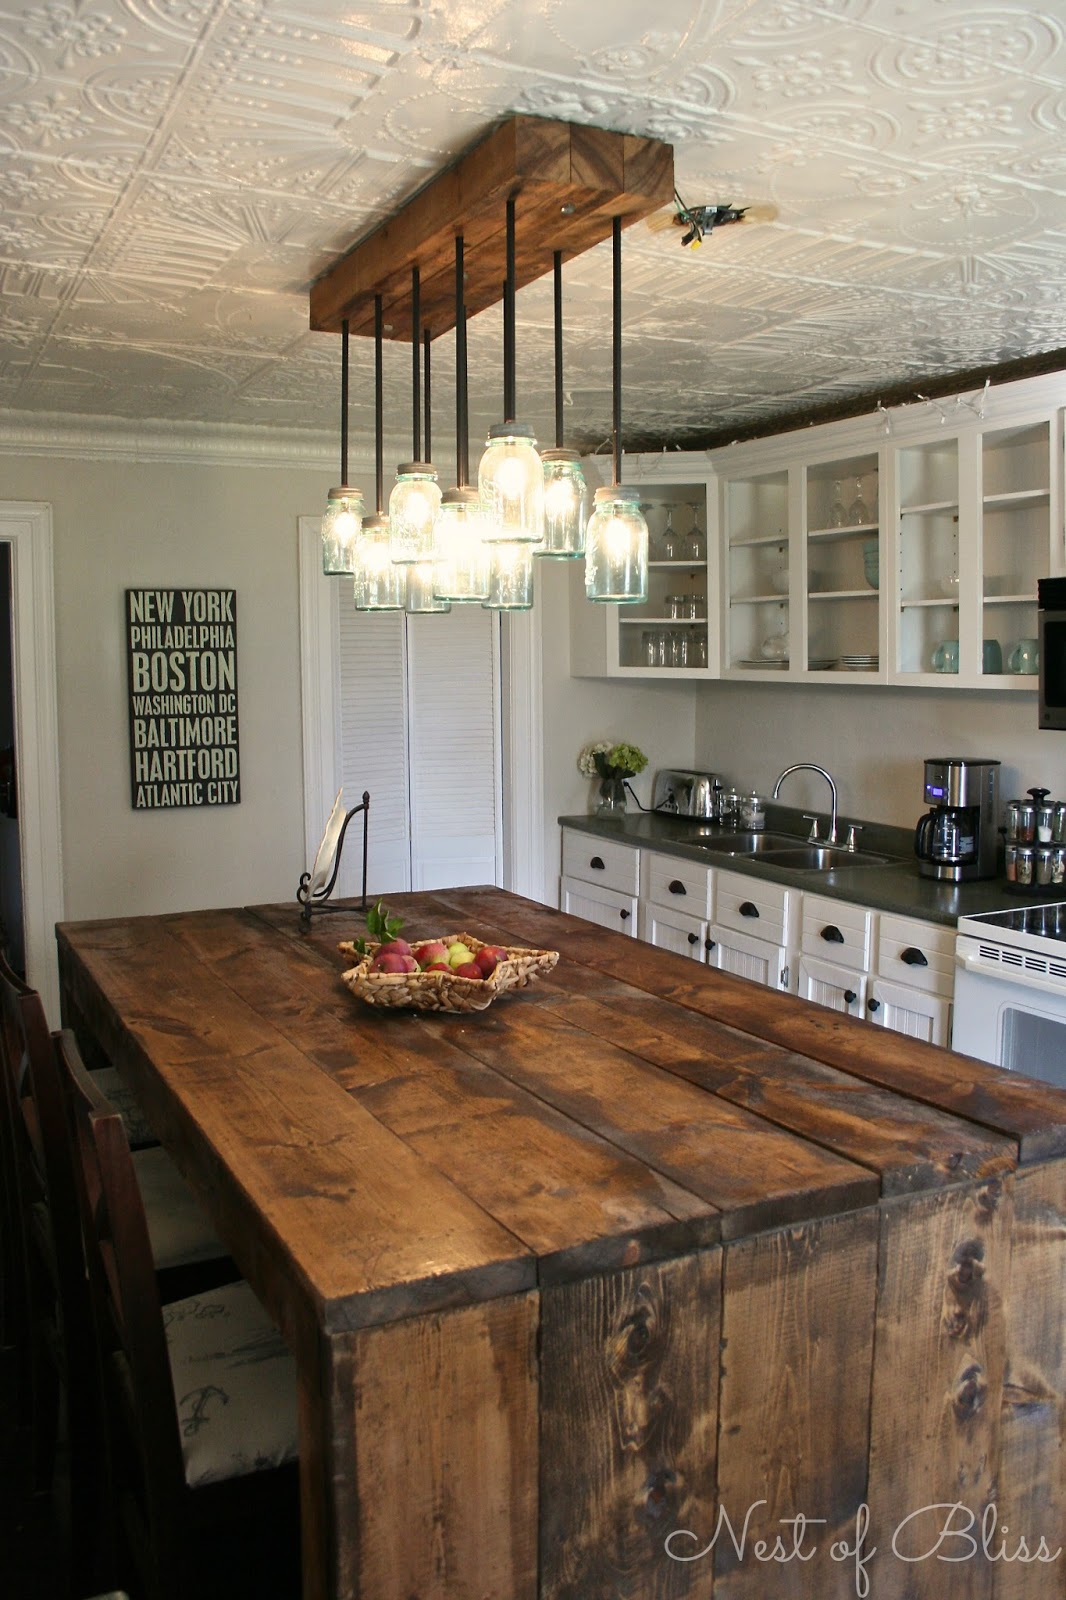 11 tin ceiling heavy wood unique atmosphere - Country Kitchen Ideas